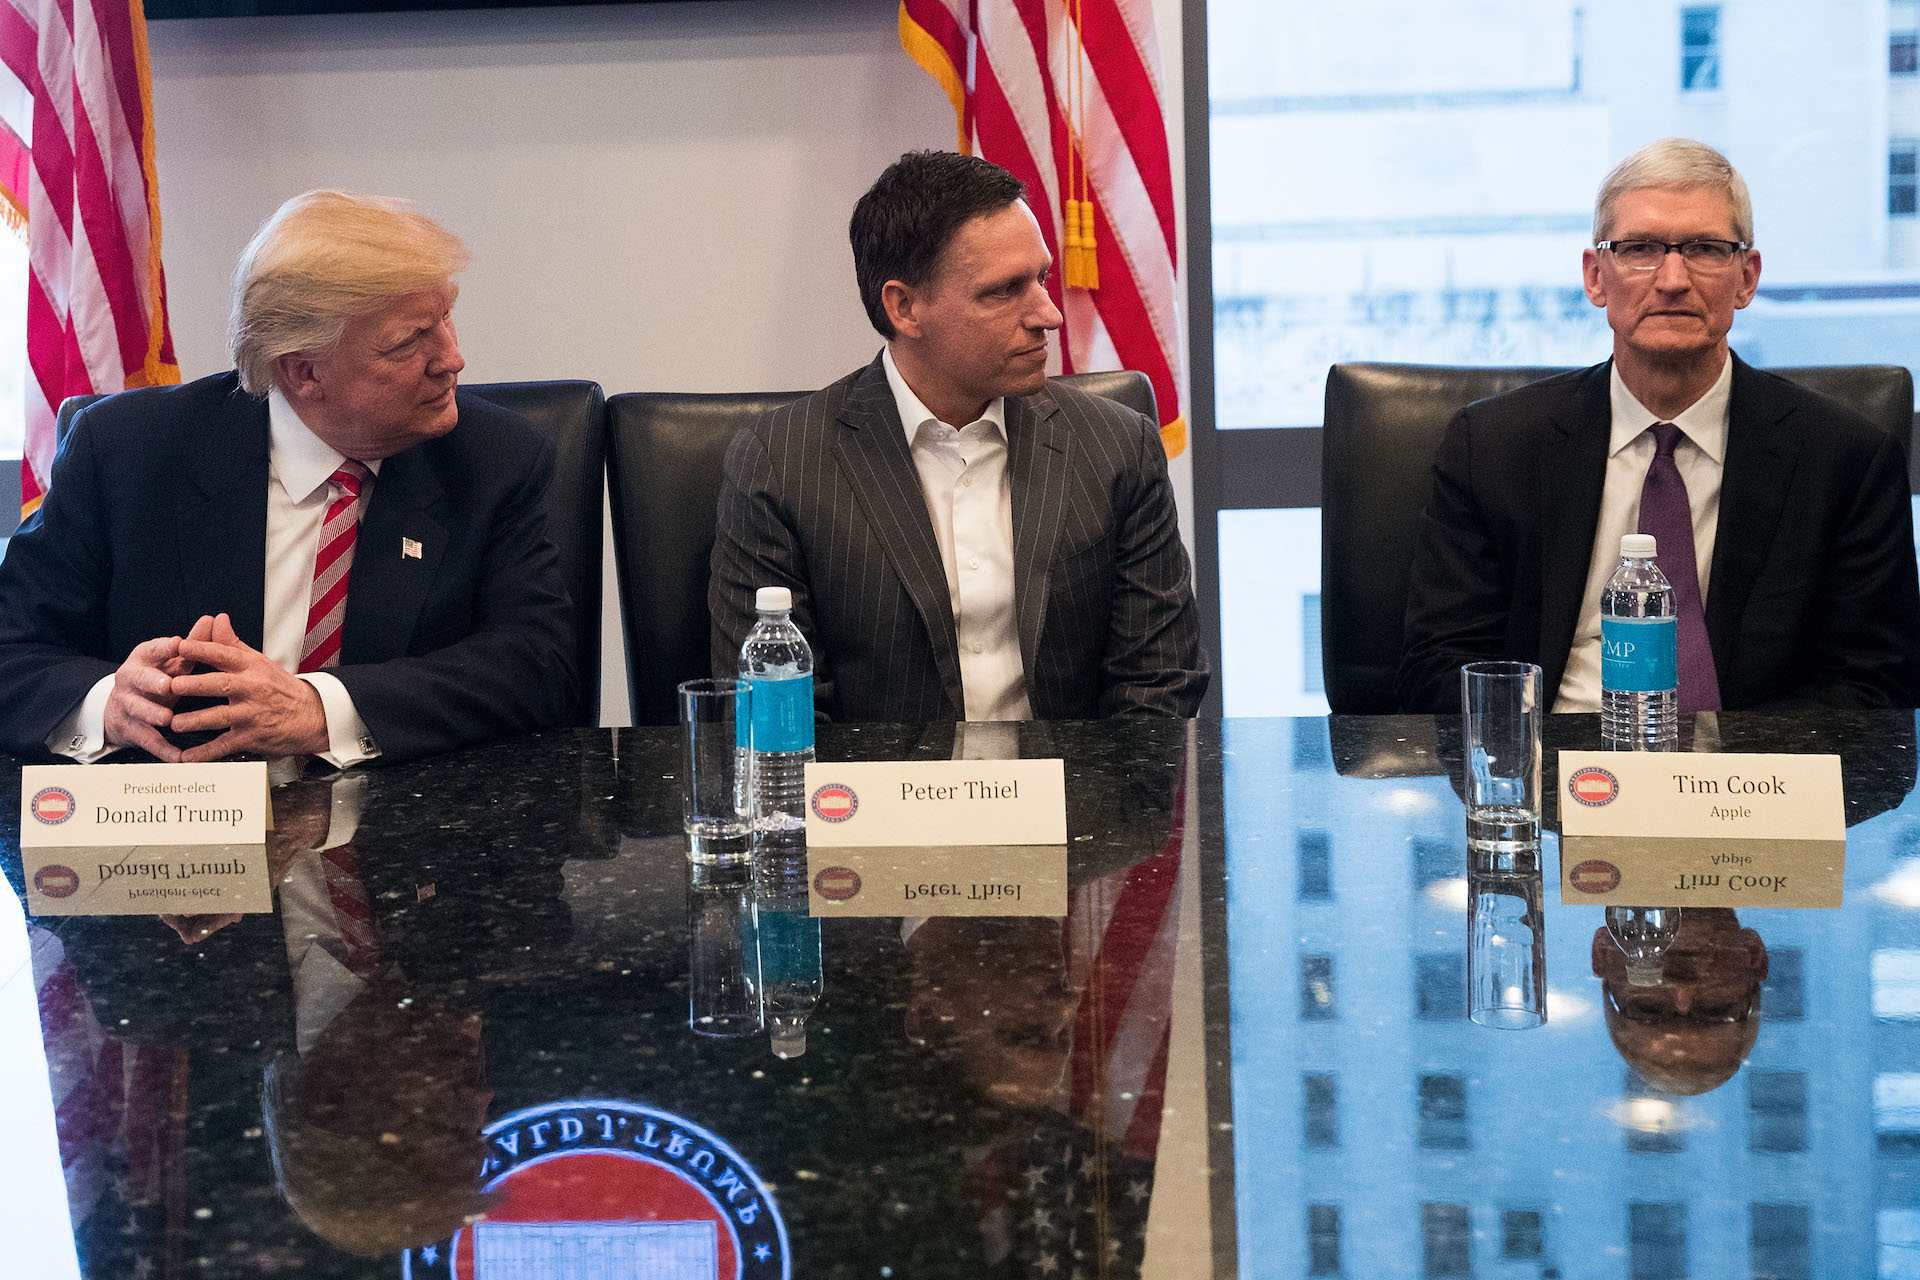 enlarge tim cook right looks engaged and enthusiastic sitting next to president elect donald trump and peter thiel at trumps tech summit in new york